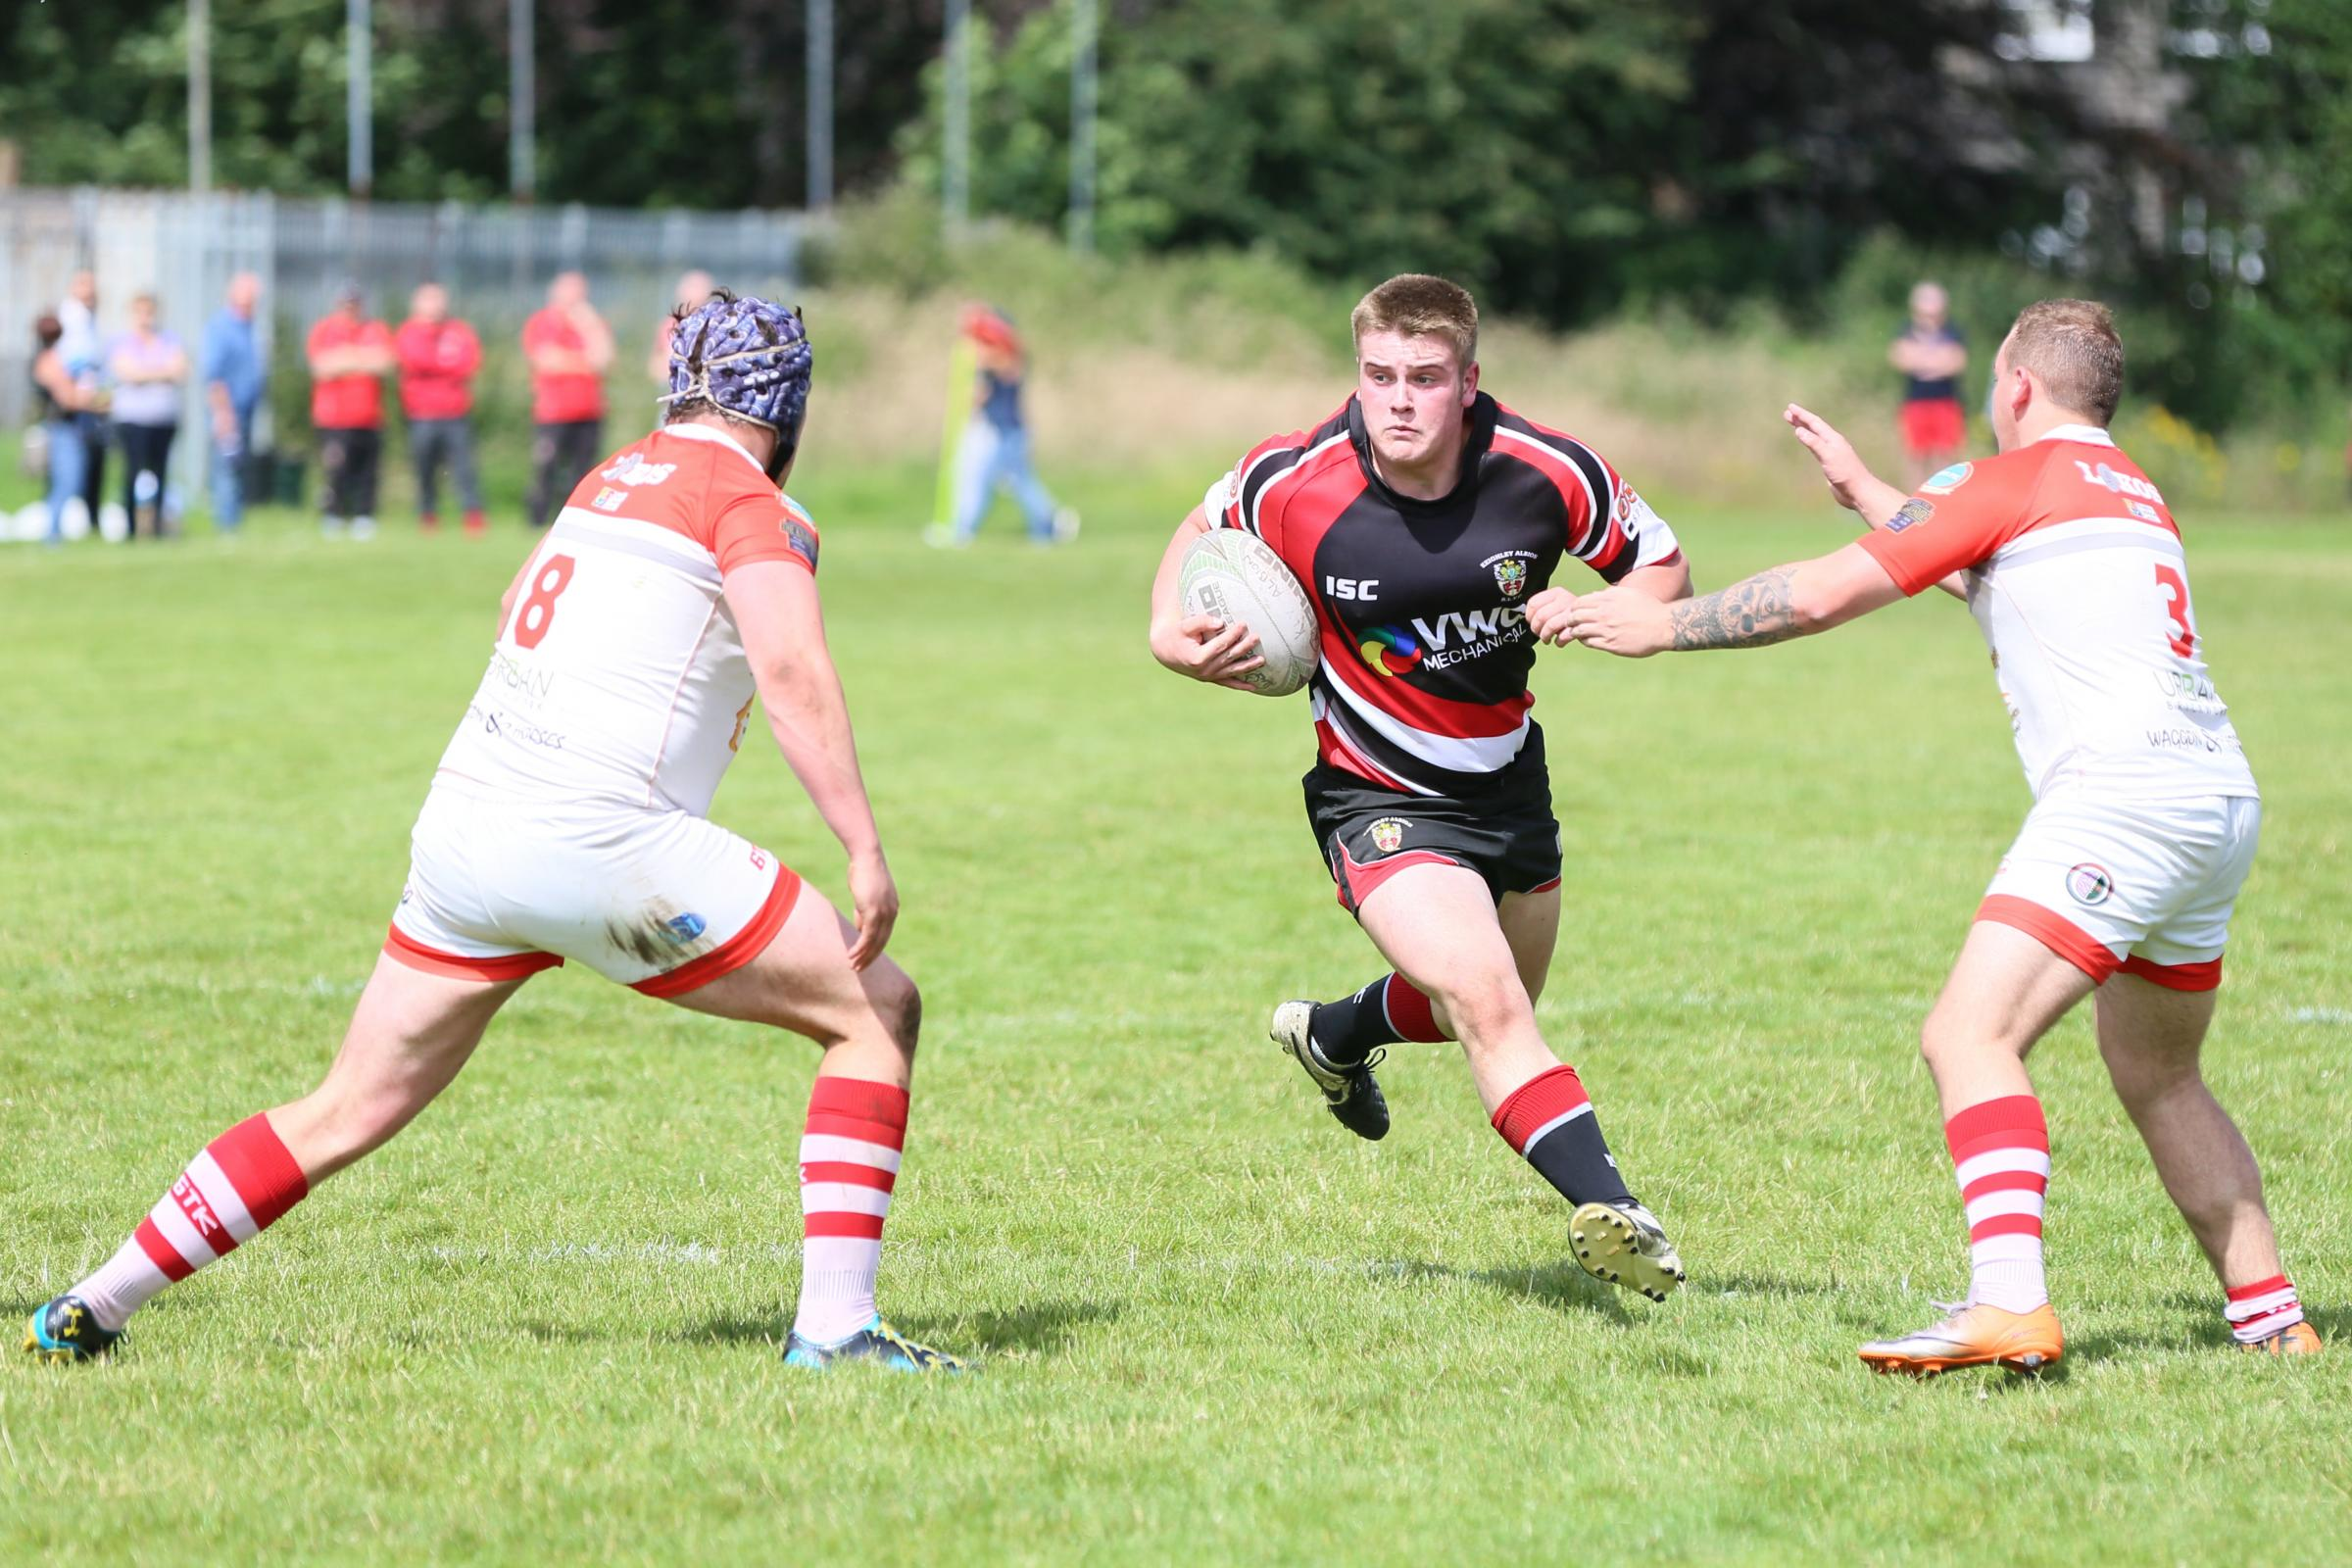 Keighley Albion's Jack Kennedy was on the try scoresheet against New Earswick